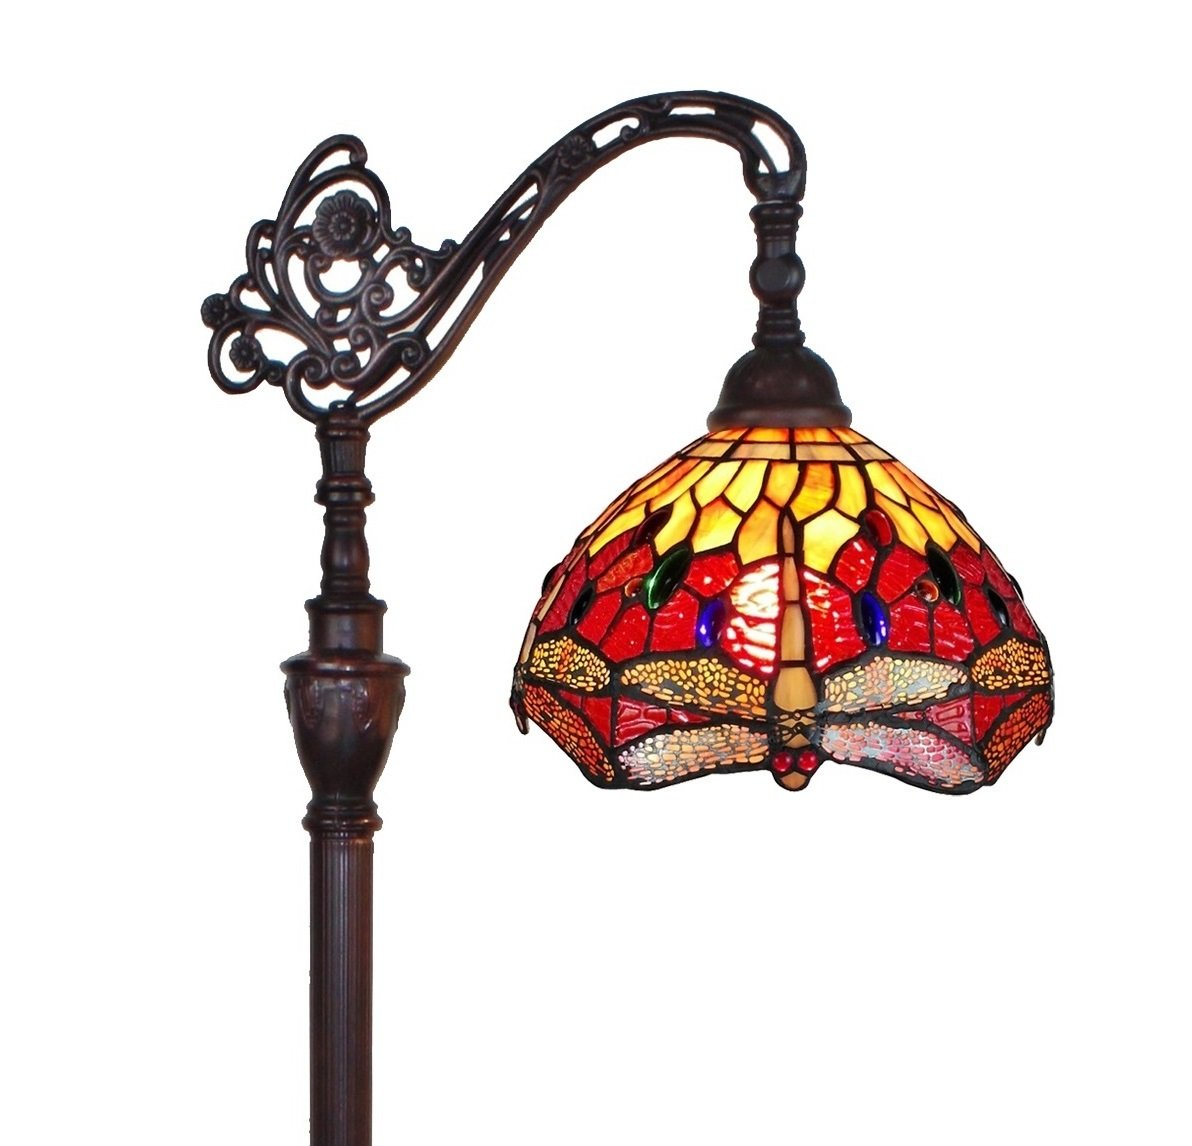 inch miss s brenda deals floor beige glass lamps don mission decor style these tiffany t lamp shop off light white on